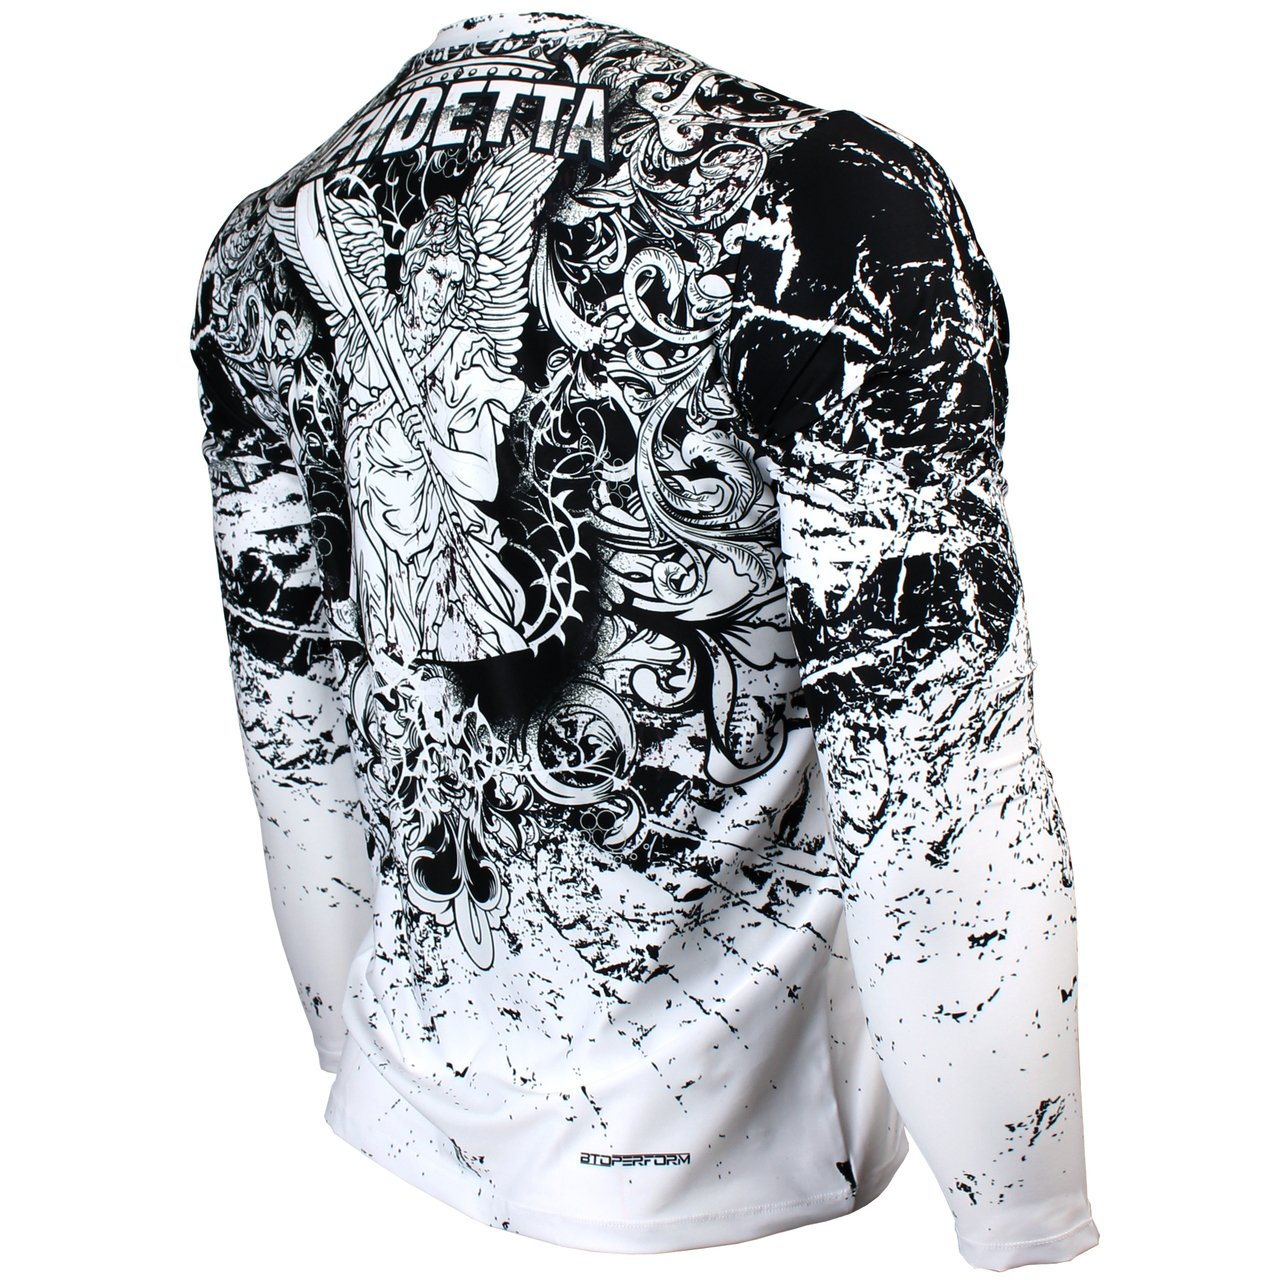 White Full Graphic Loose-Fit Long Sleeve Crew Neck Shirts FR-155W Btoperform Vendetta